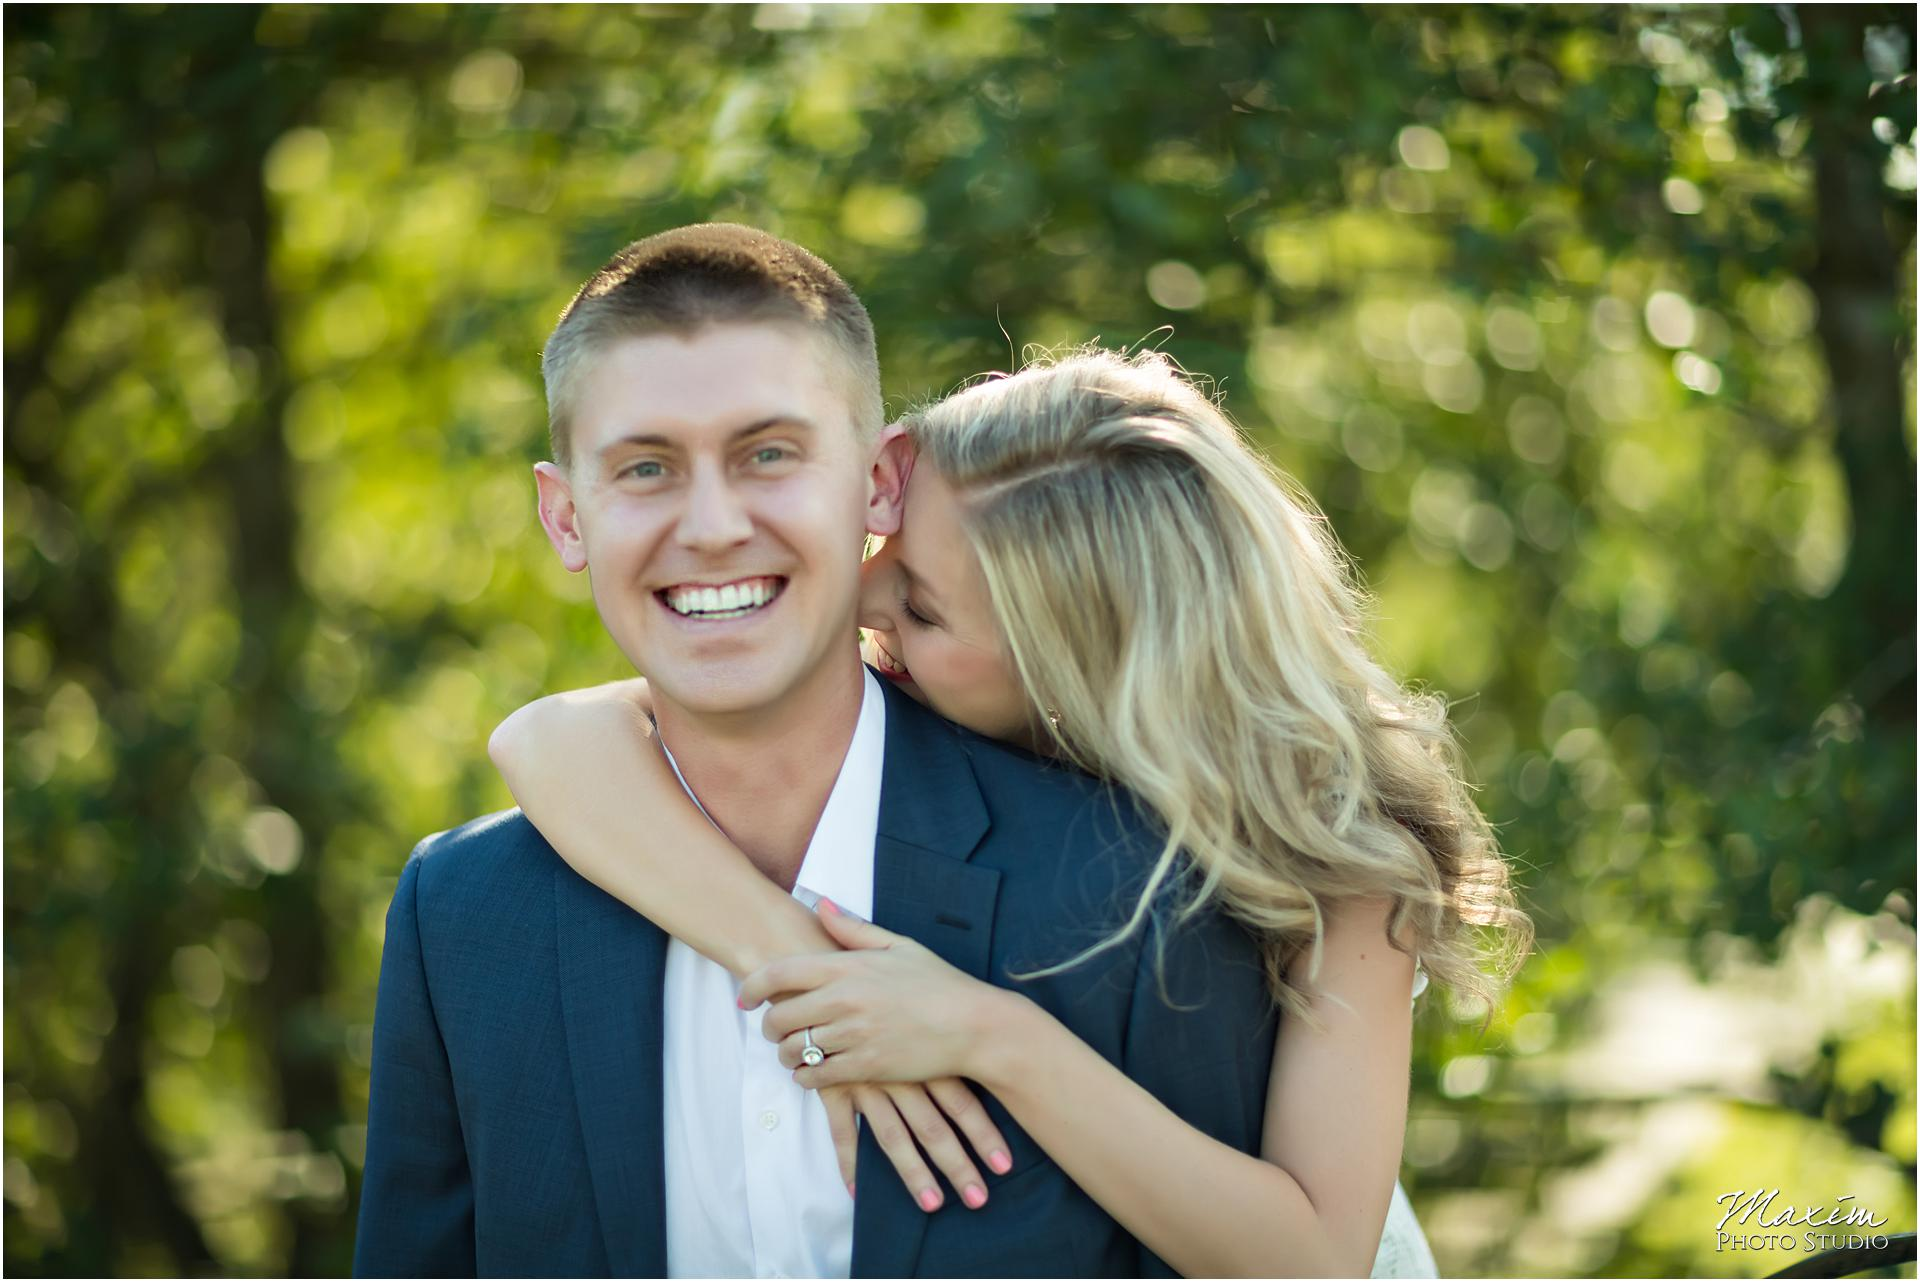 Ault Park Cincinnati, Engagement Photography, laughing couple